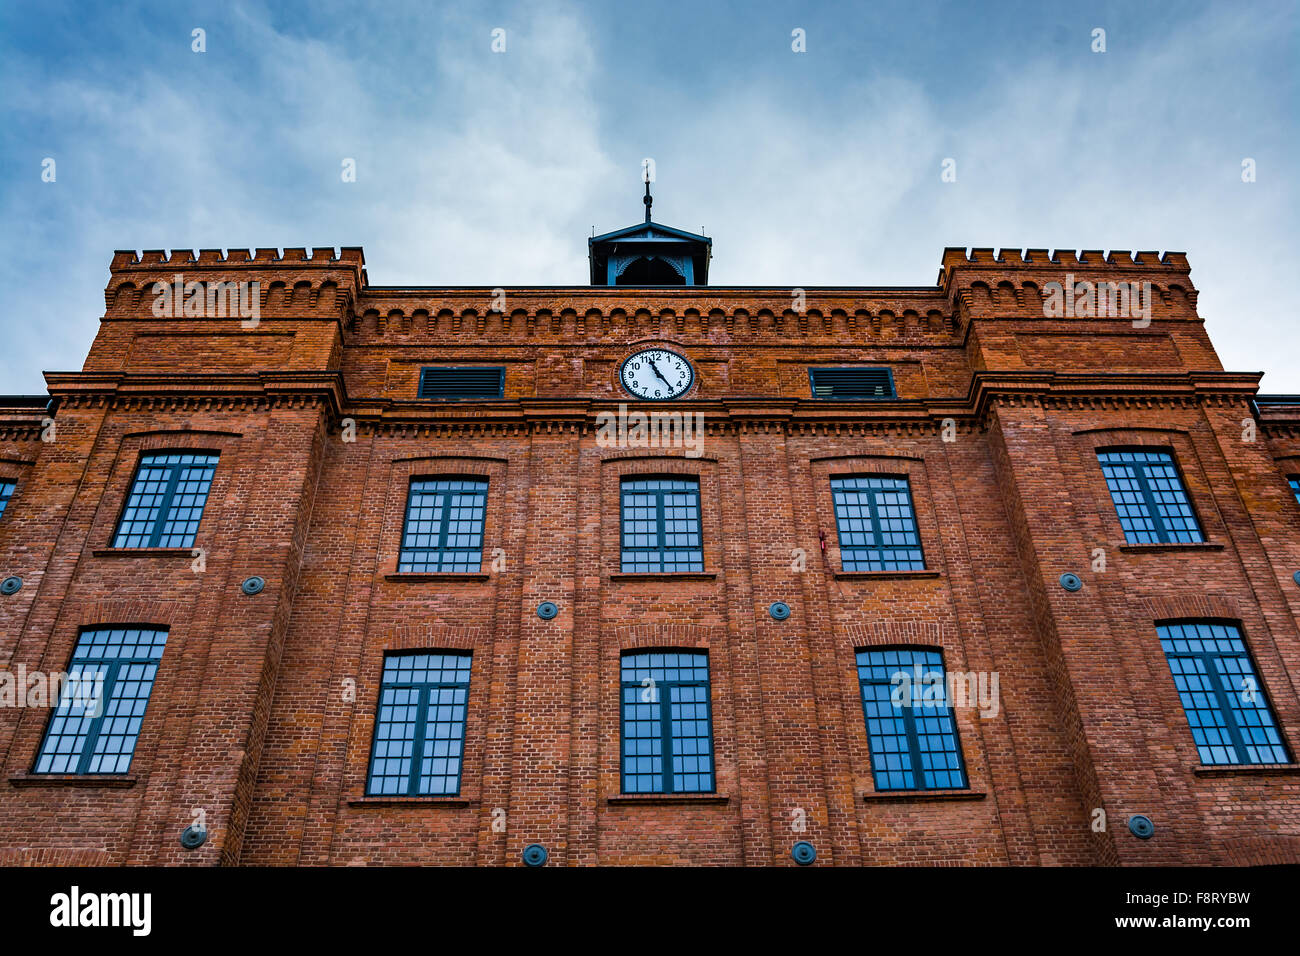 Beautifully renovated facade of an old textile factory - Stock Image